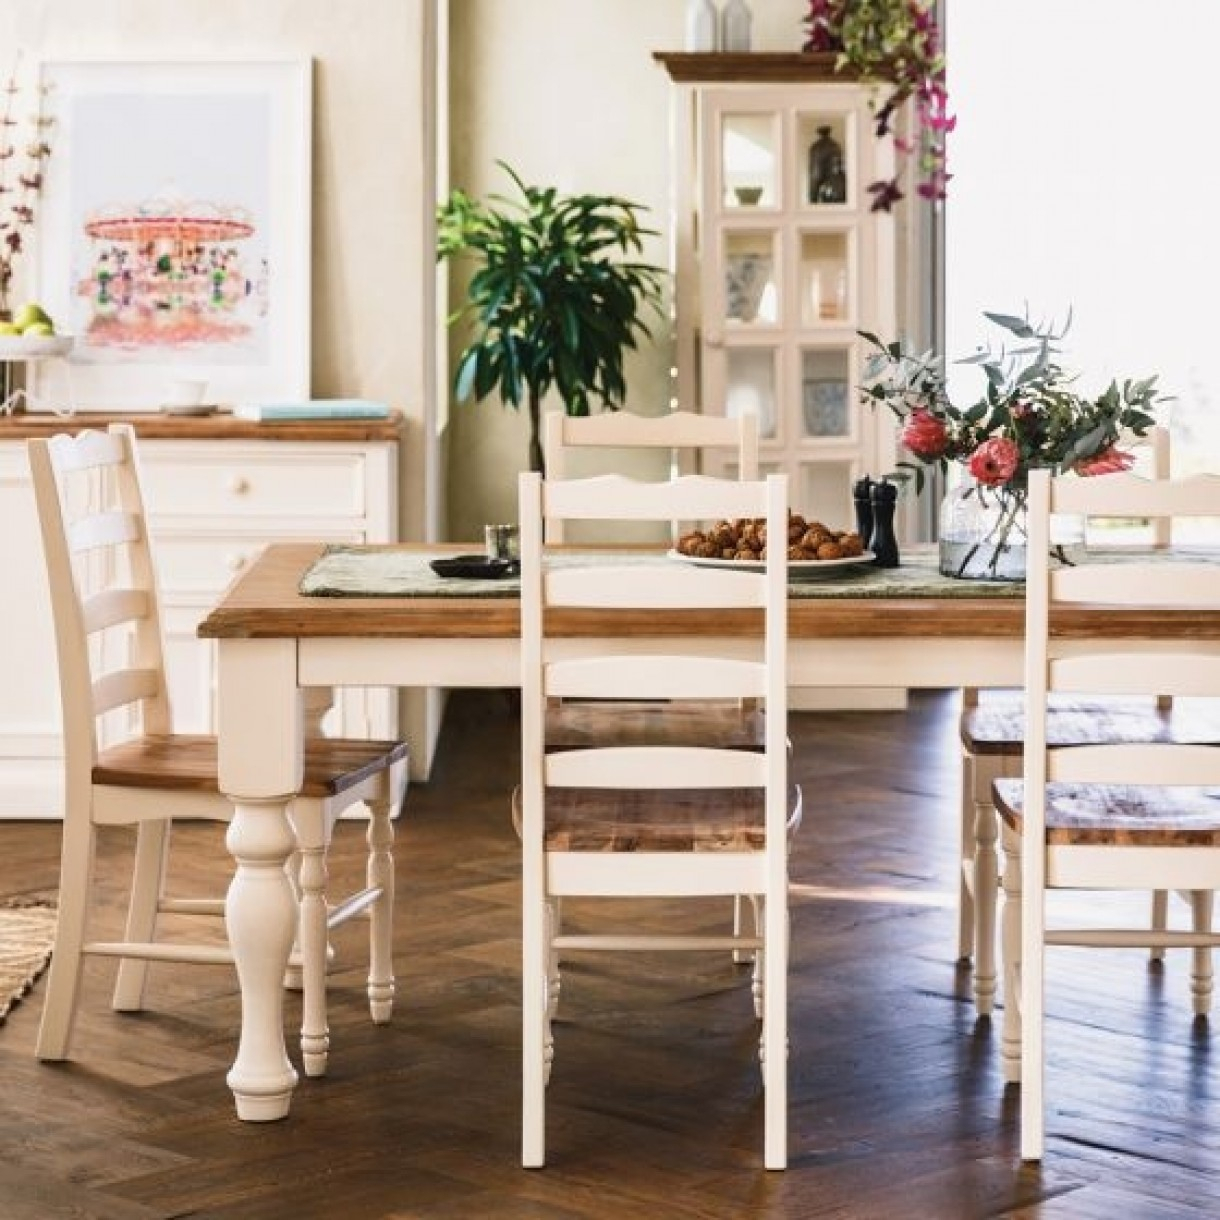 Mansfield Dining Table 2100 With 6 Mansfield Chairs Package For Mansfield Beige Linen Sofa Chairs (View 21 of 25)